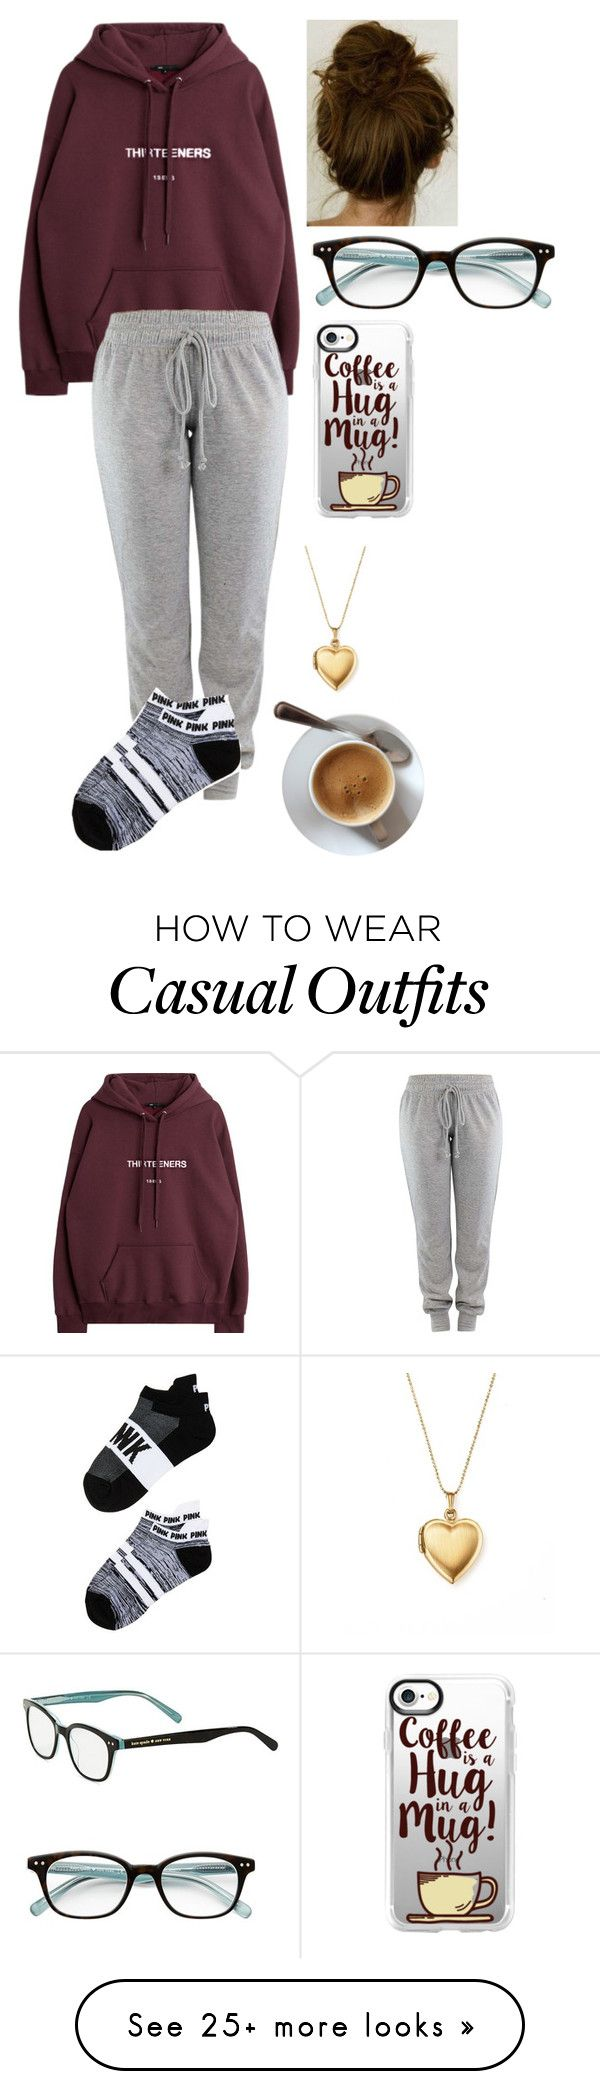 """Casual Lazy Day~~"" by ninjapandaforever on Polyvore featuring Victoria's Secret, Casetify, Kate Spade and Bloomingdale's"